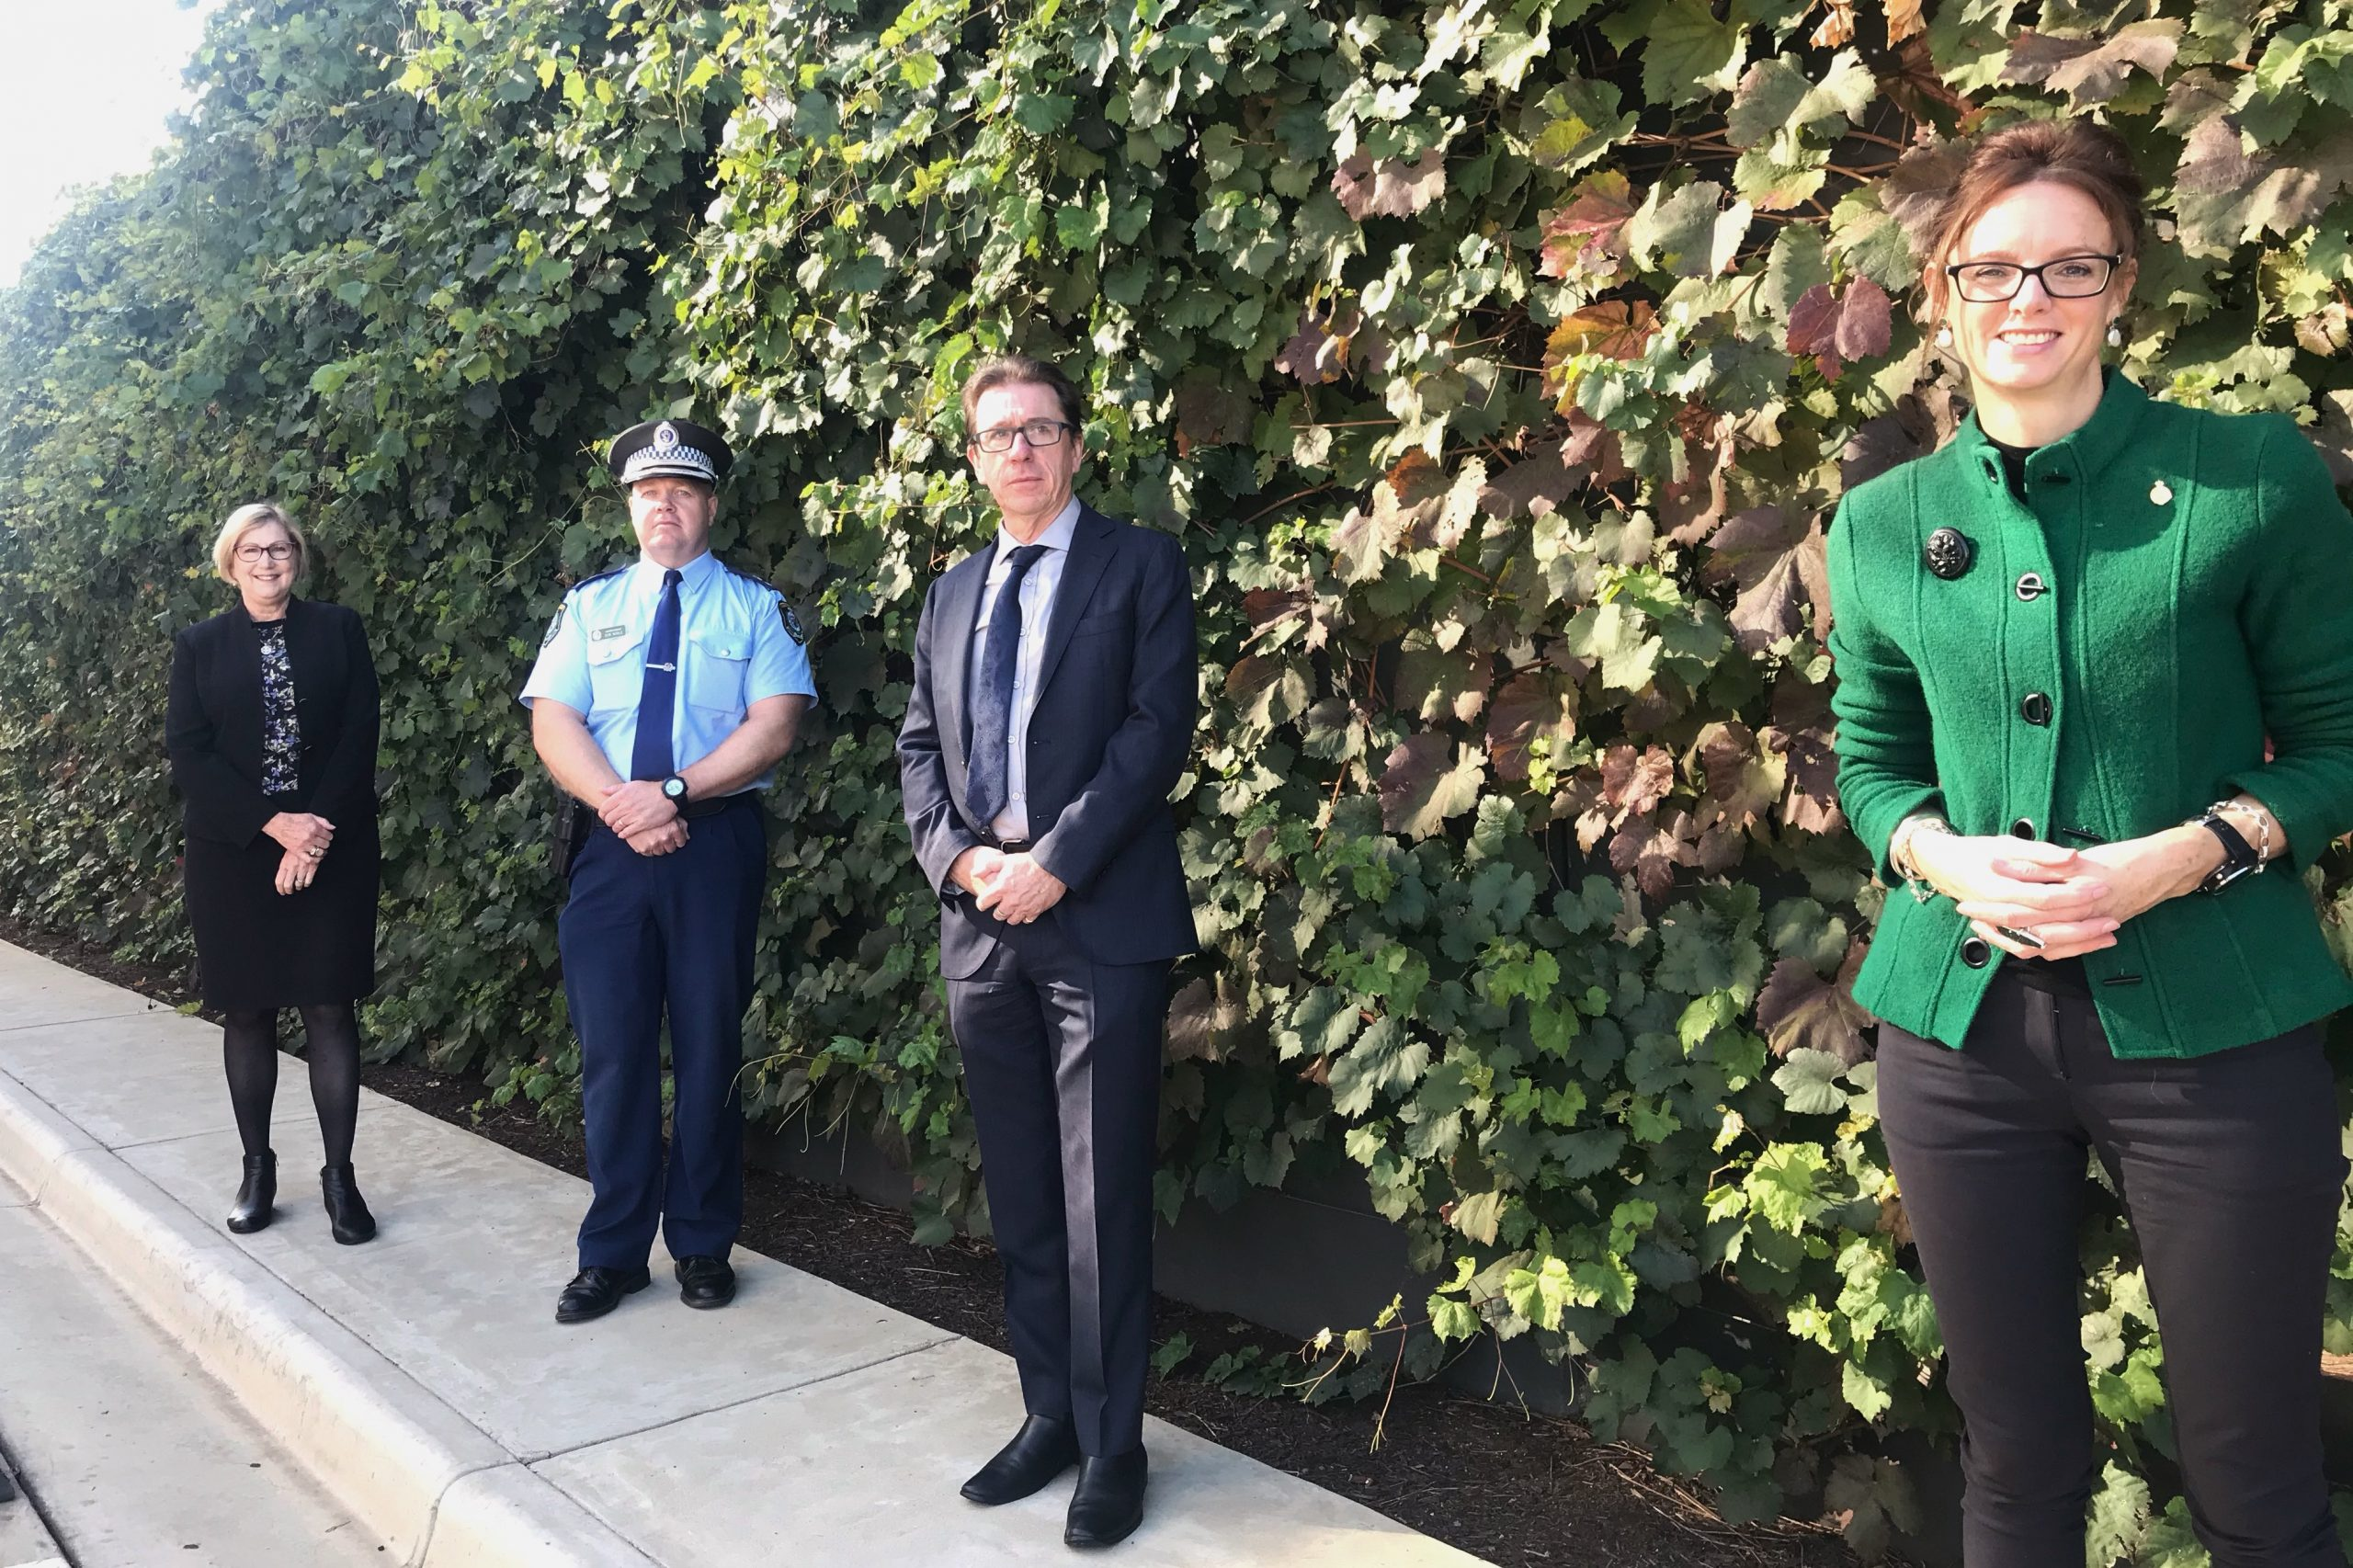 Jill Ludford, Bob Noble, Dr Joe McGirr and Steph Cooke MP stand against a green wall of vines spaced a metre from one another.